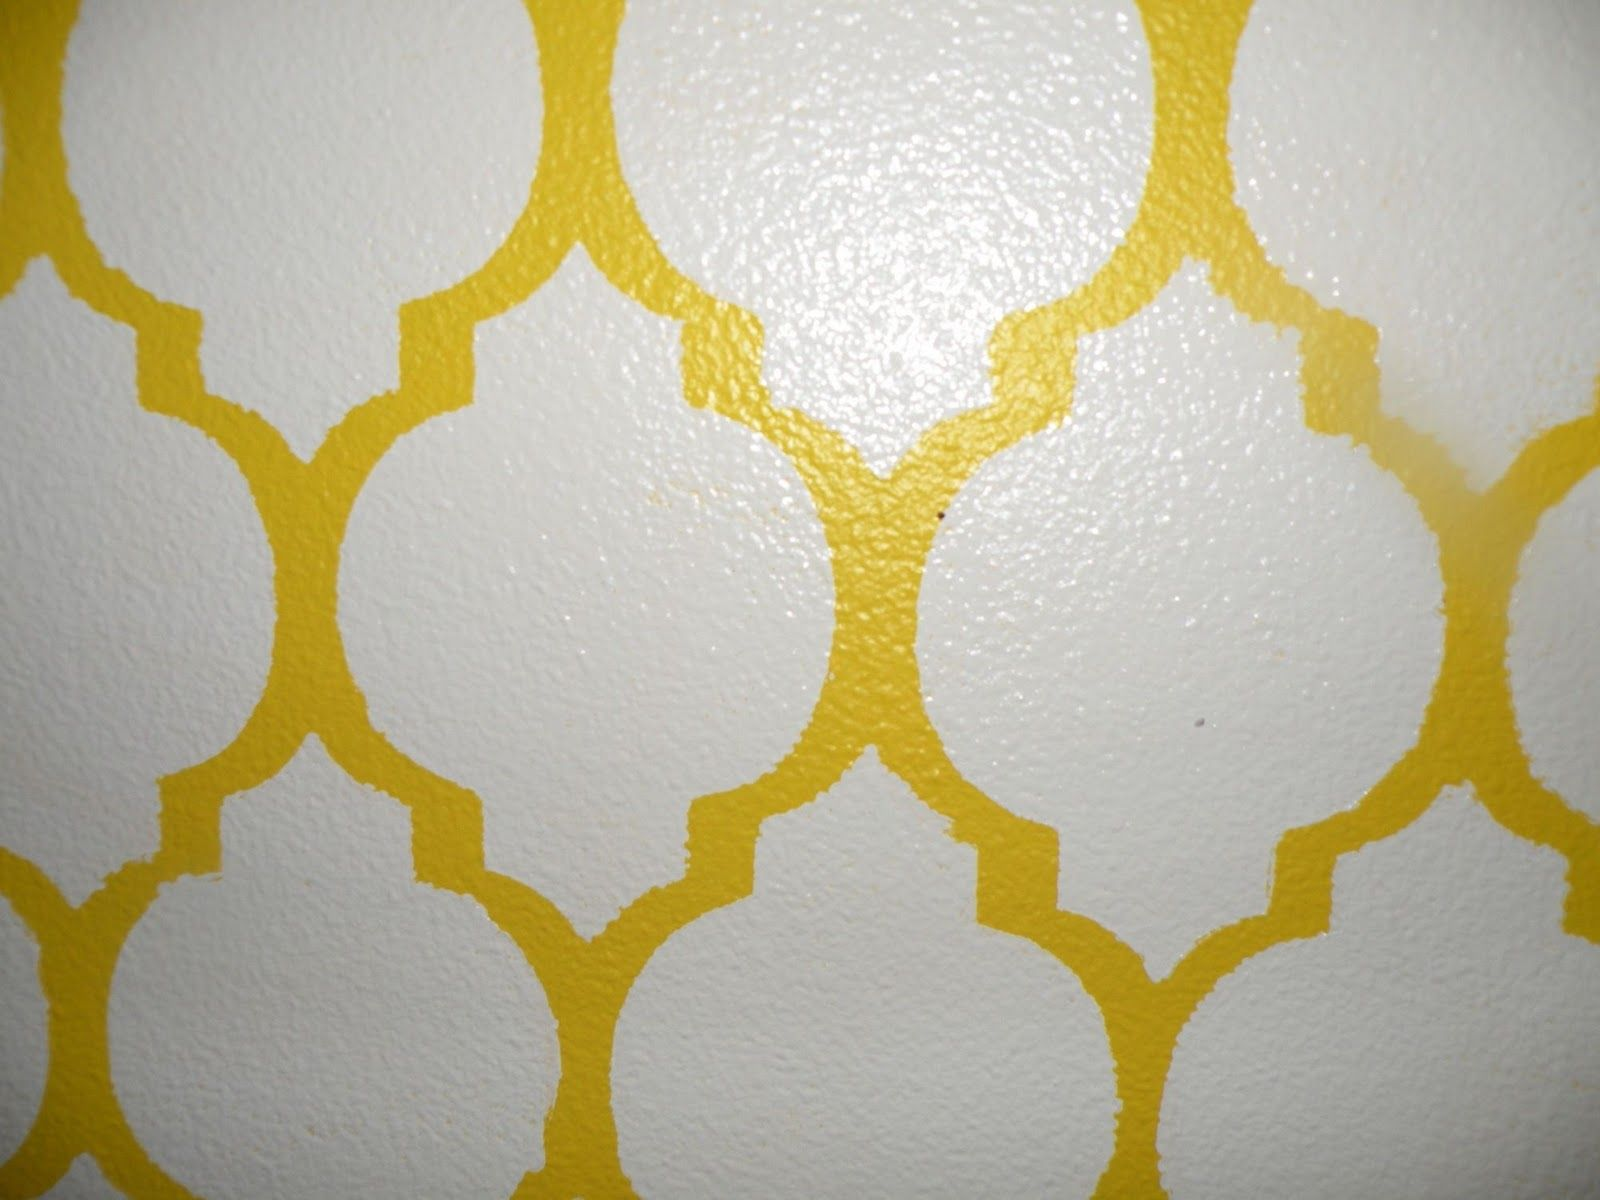 Wall Stencil Design Ideas | http://ultimaterpmod.us/ | Pinterest ...